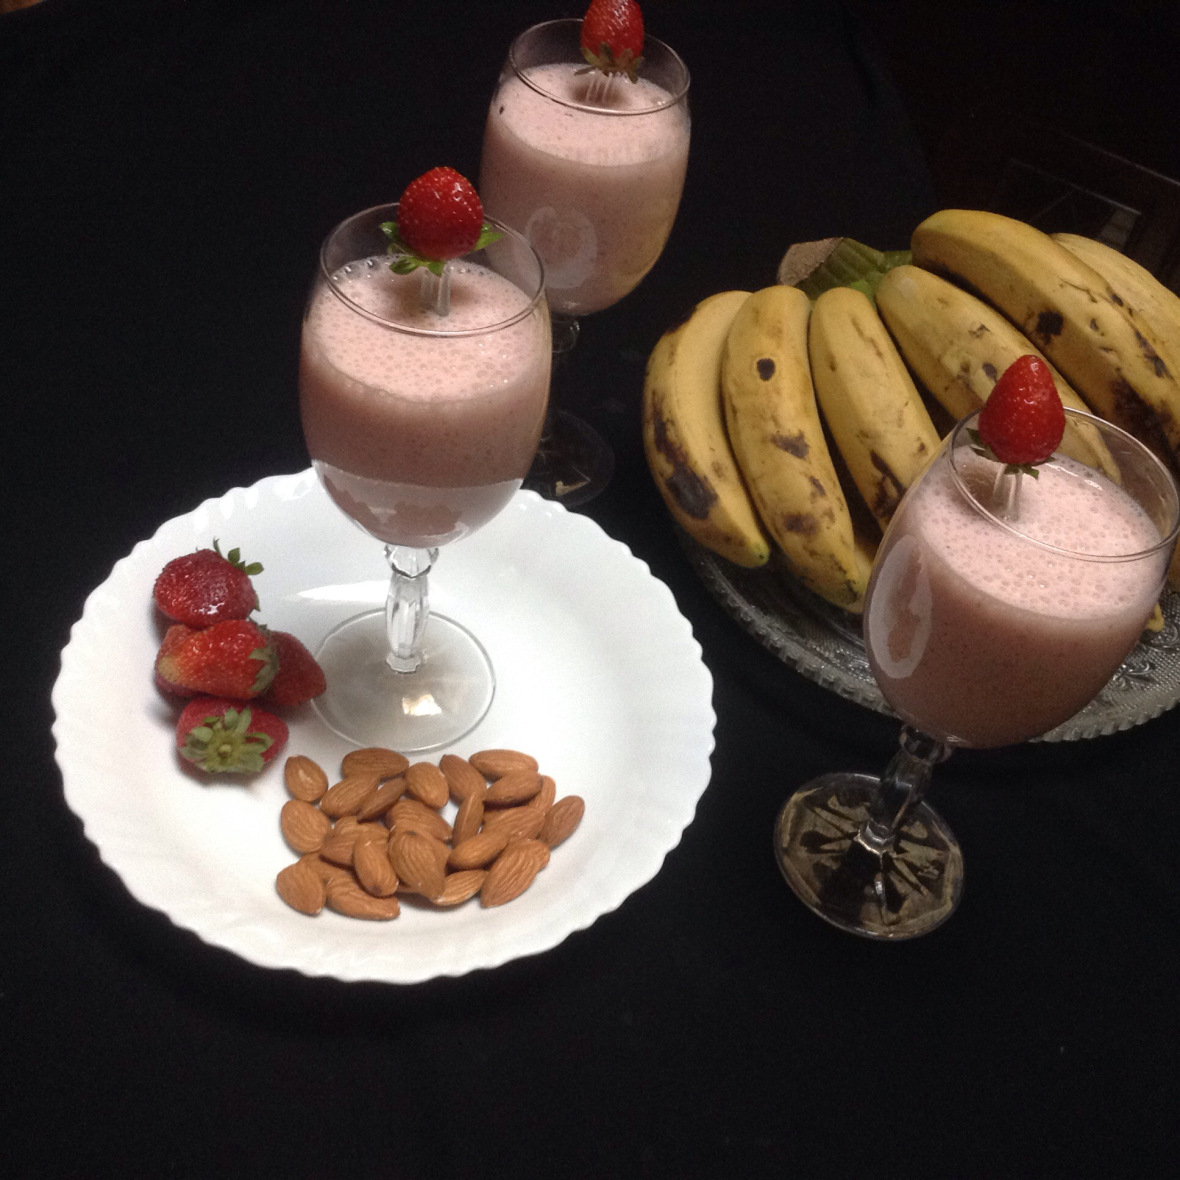 Fruits and Almond Milkshake